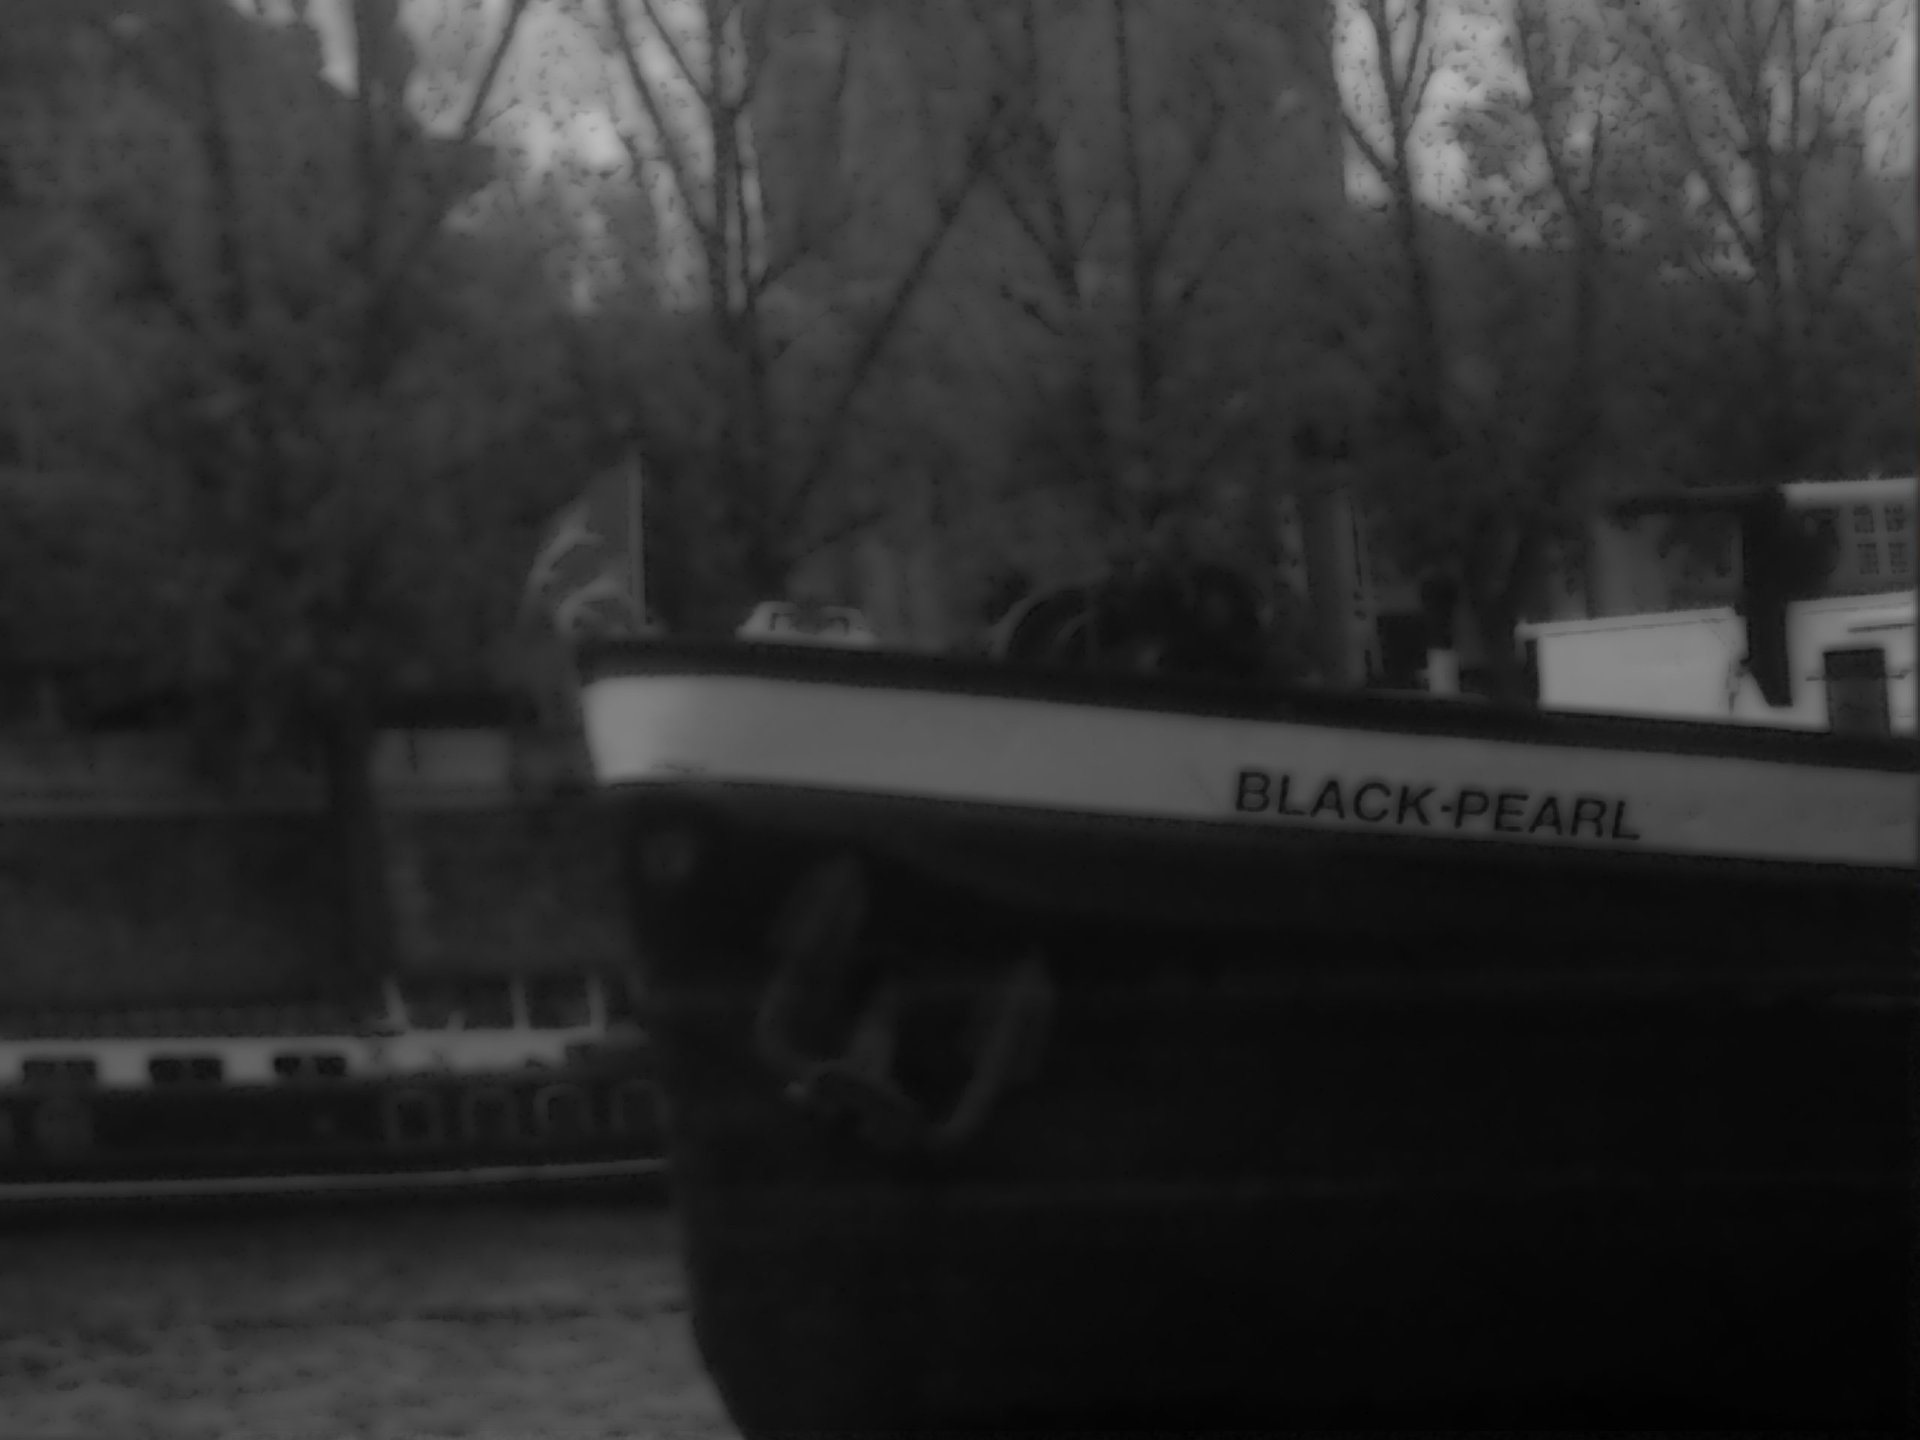 The Black Pearl - Photography Photo (583758) - Fanpop